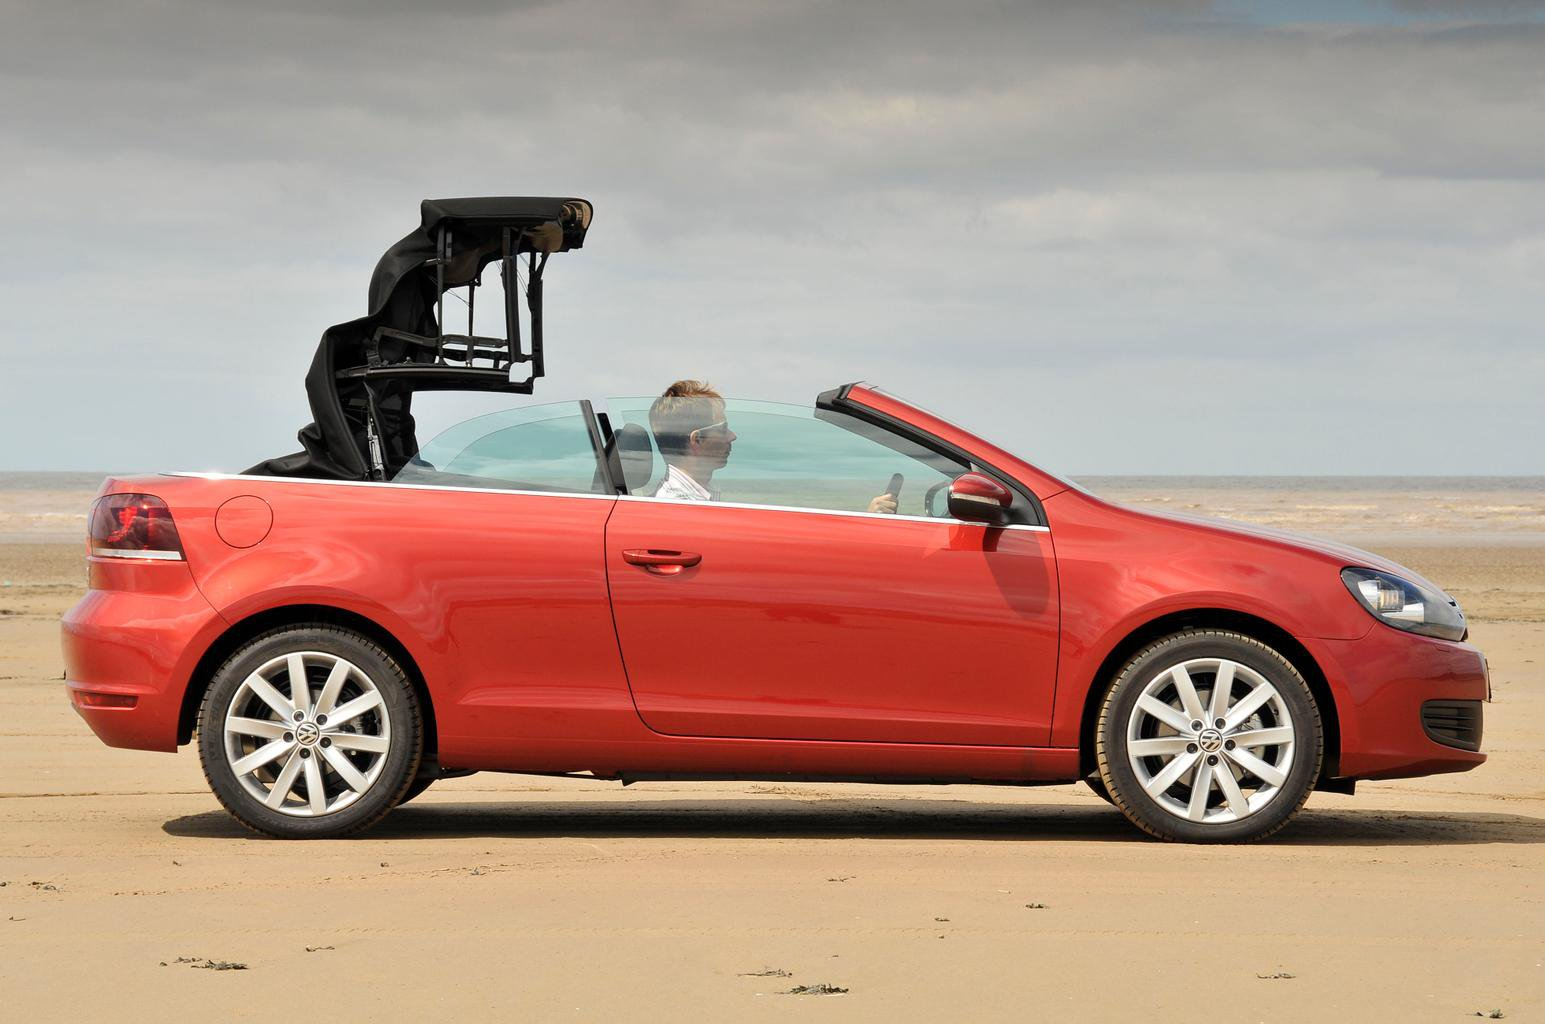 Used test – affordable convertibles: Audi A3 vs Peugeot 308 vs Volkswagen Golf